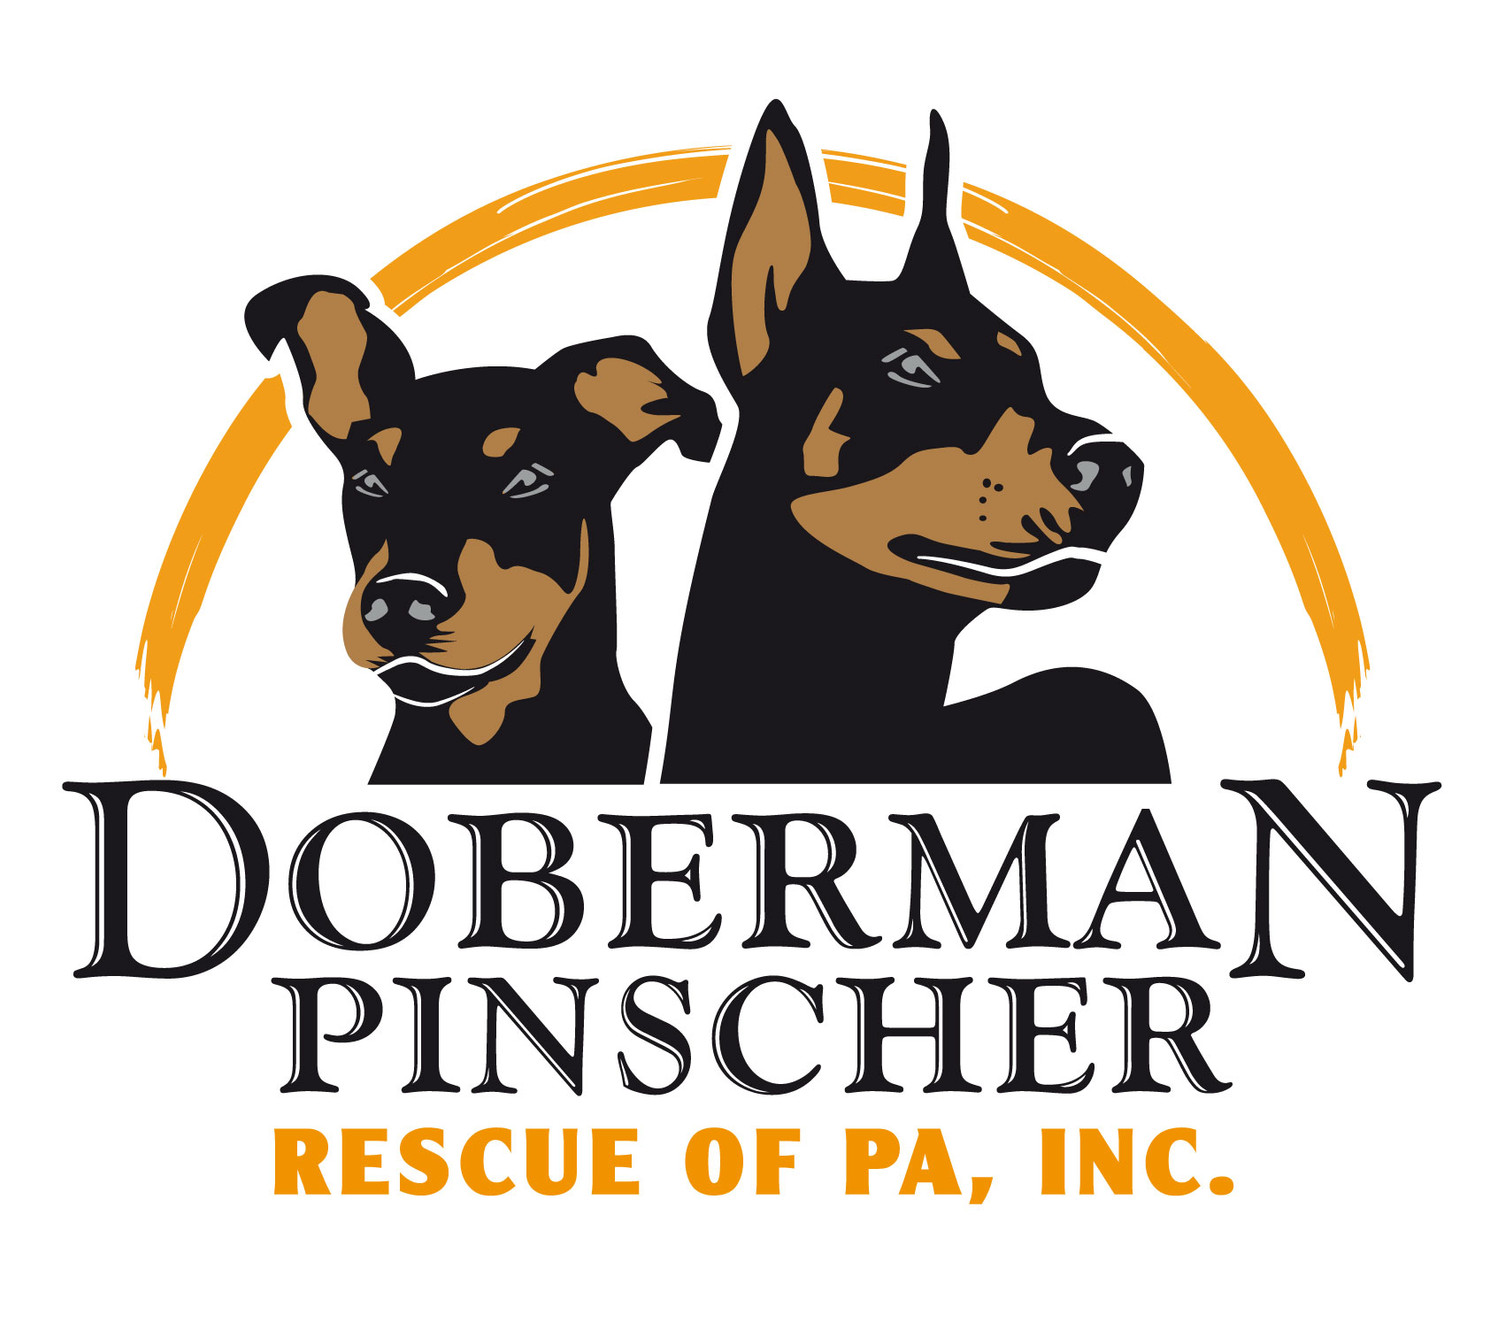 Doberman Pinscher Rescue of PA, Inc